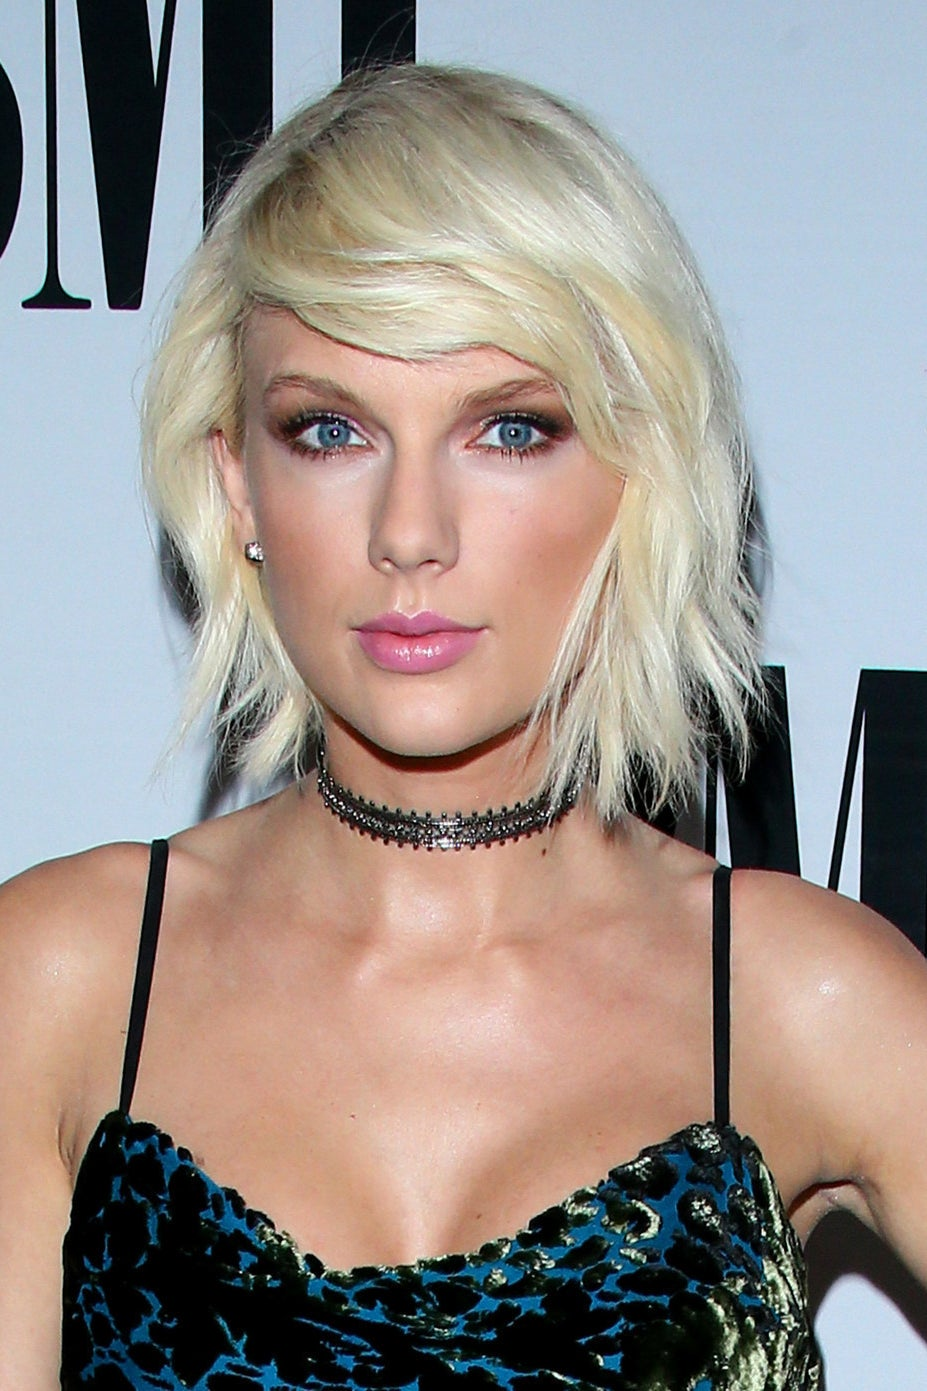 People In China Have Come Up With A Batshit Theory That Taylor Swift Is Dating A Chinese Millionaire